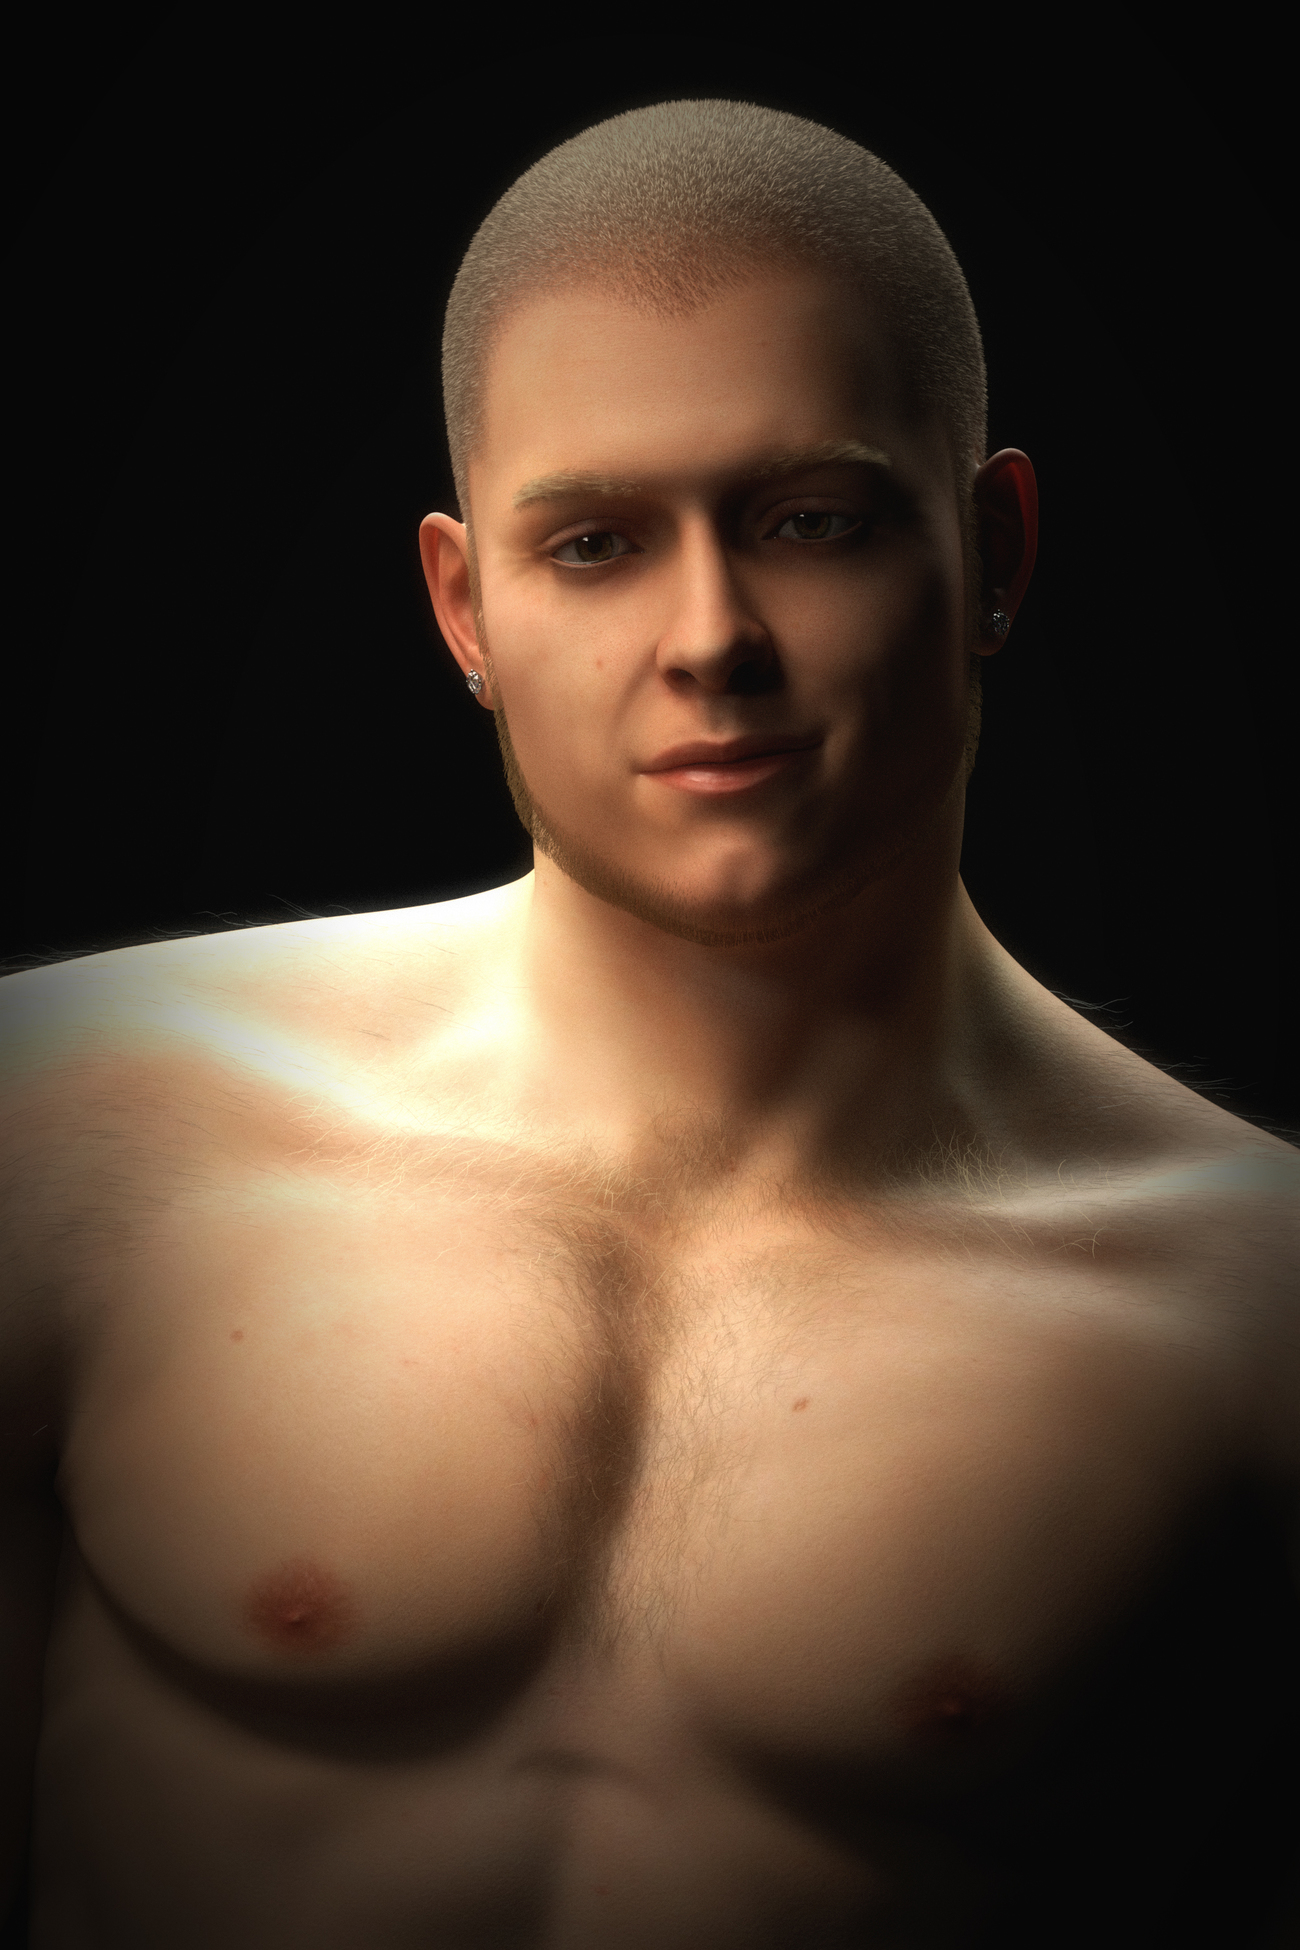 Topher Head Shot by evilded777